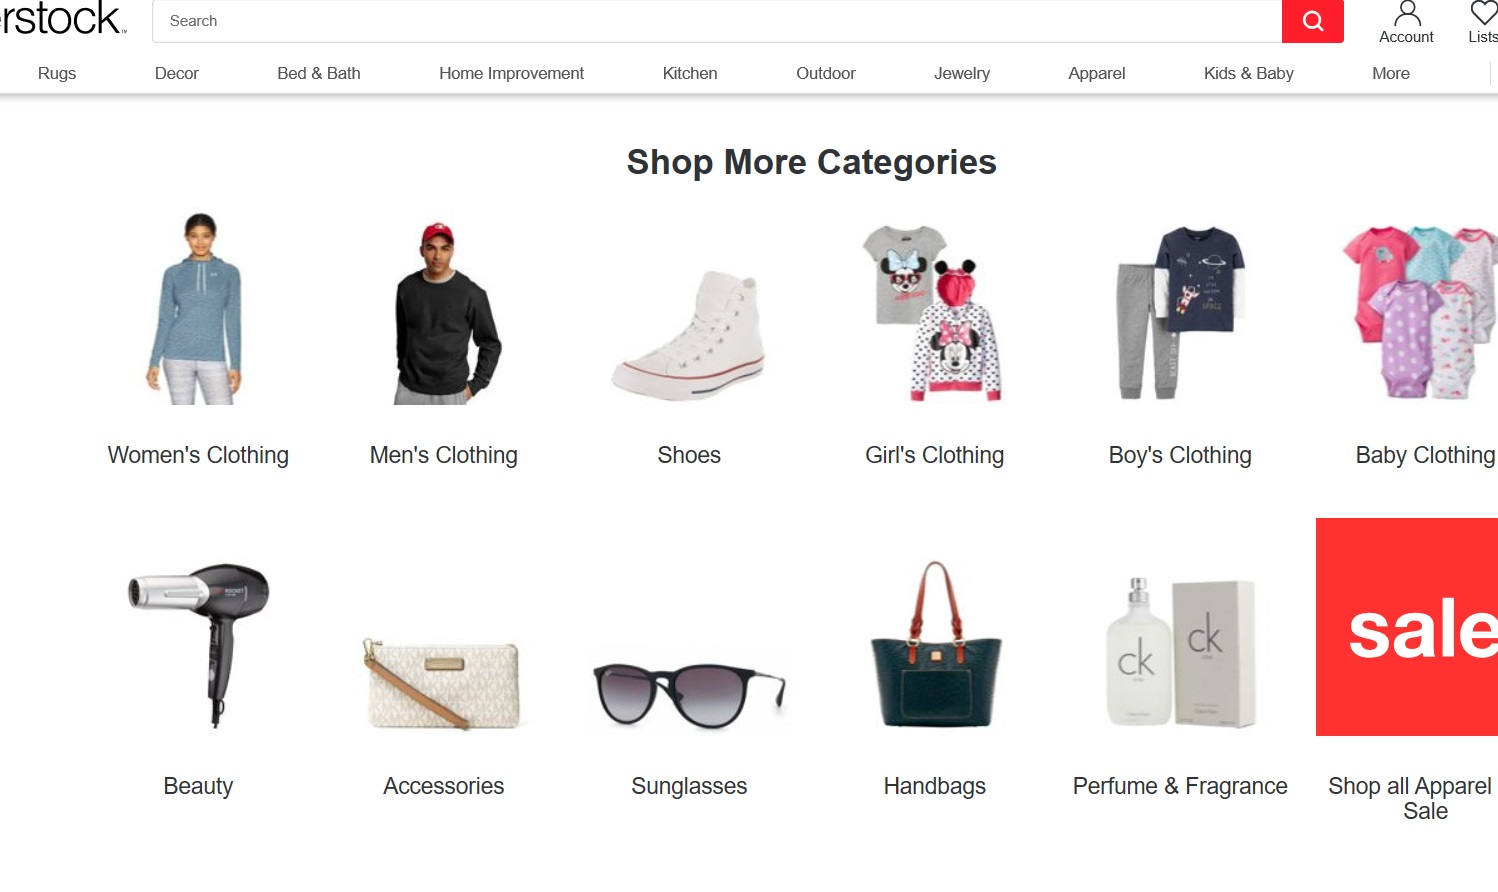 Page displaying different product categories.